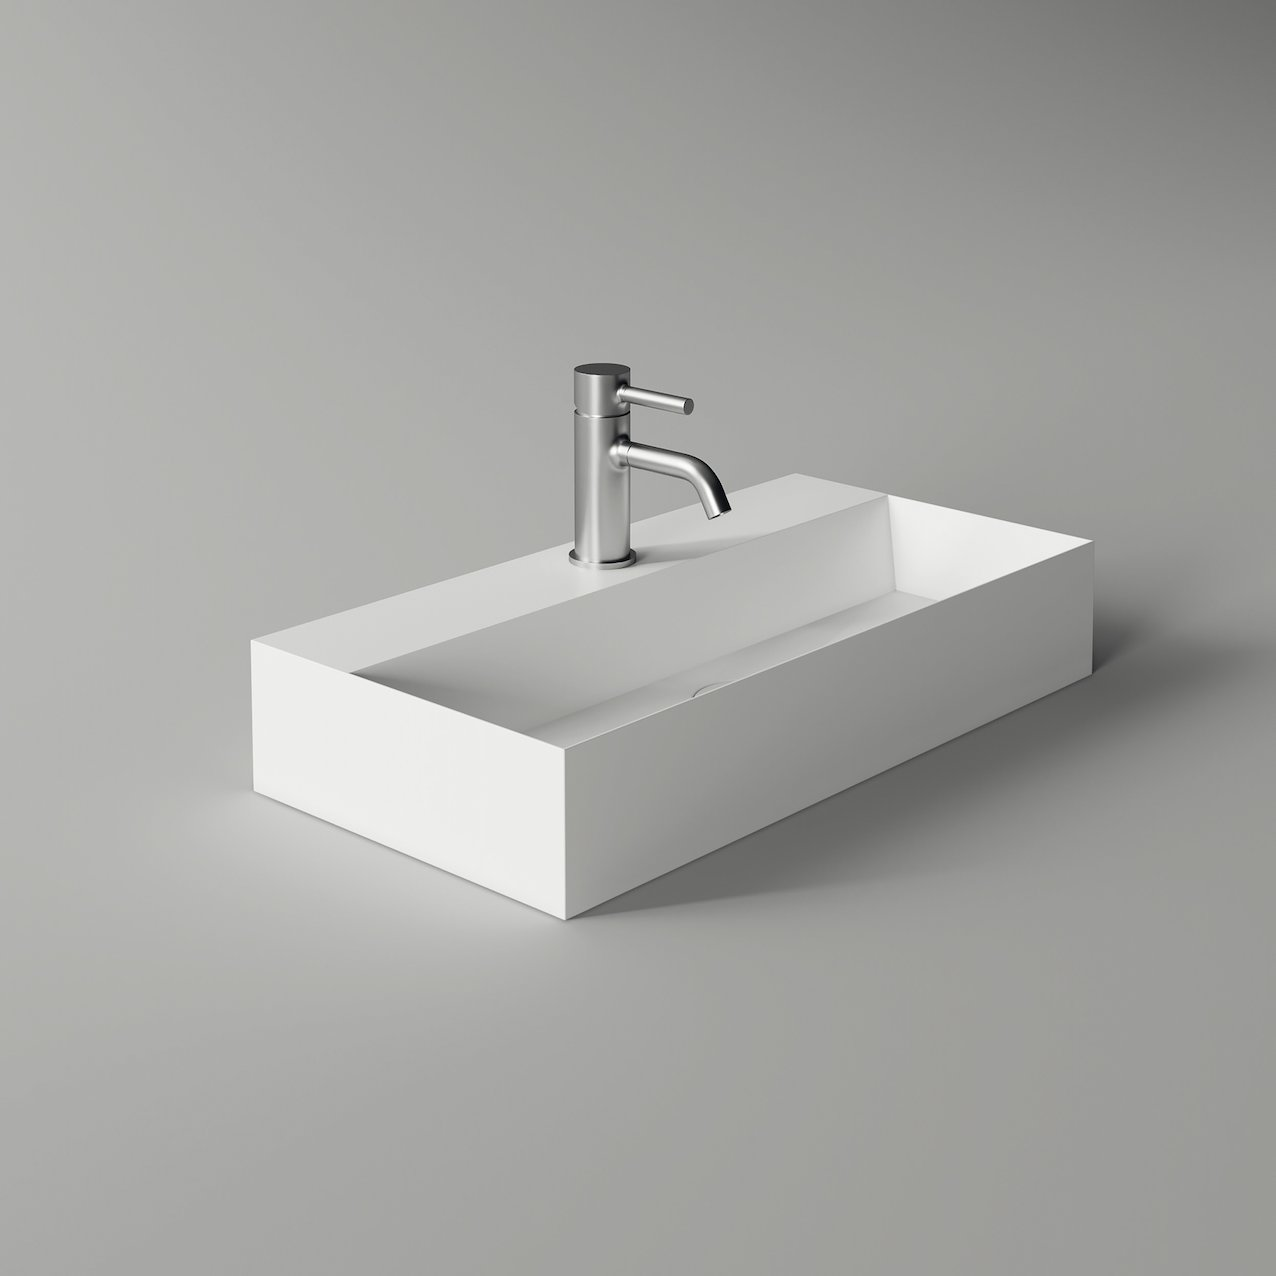 Washbasin SPY rectangular 60